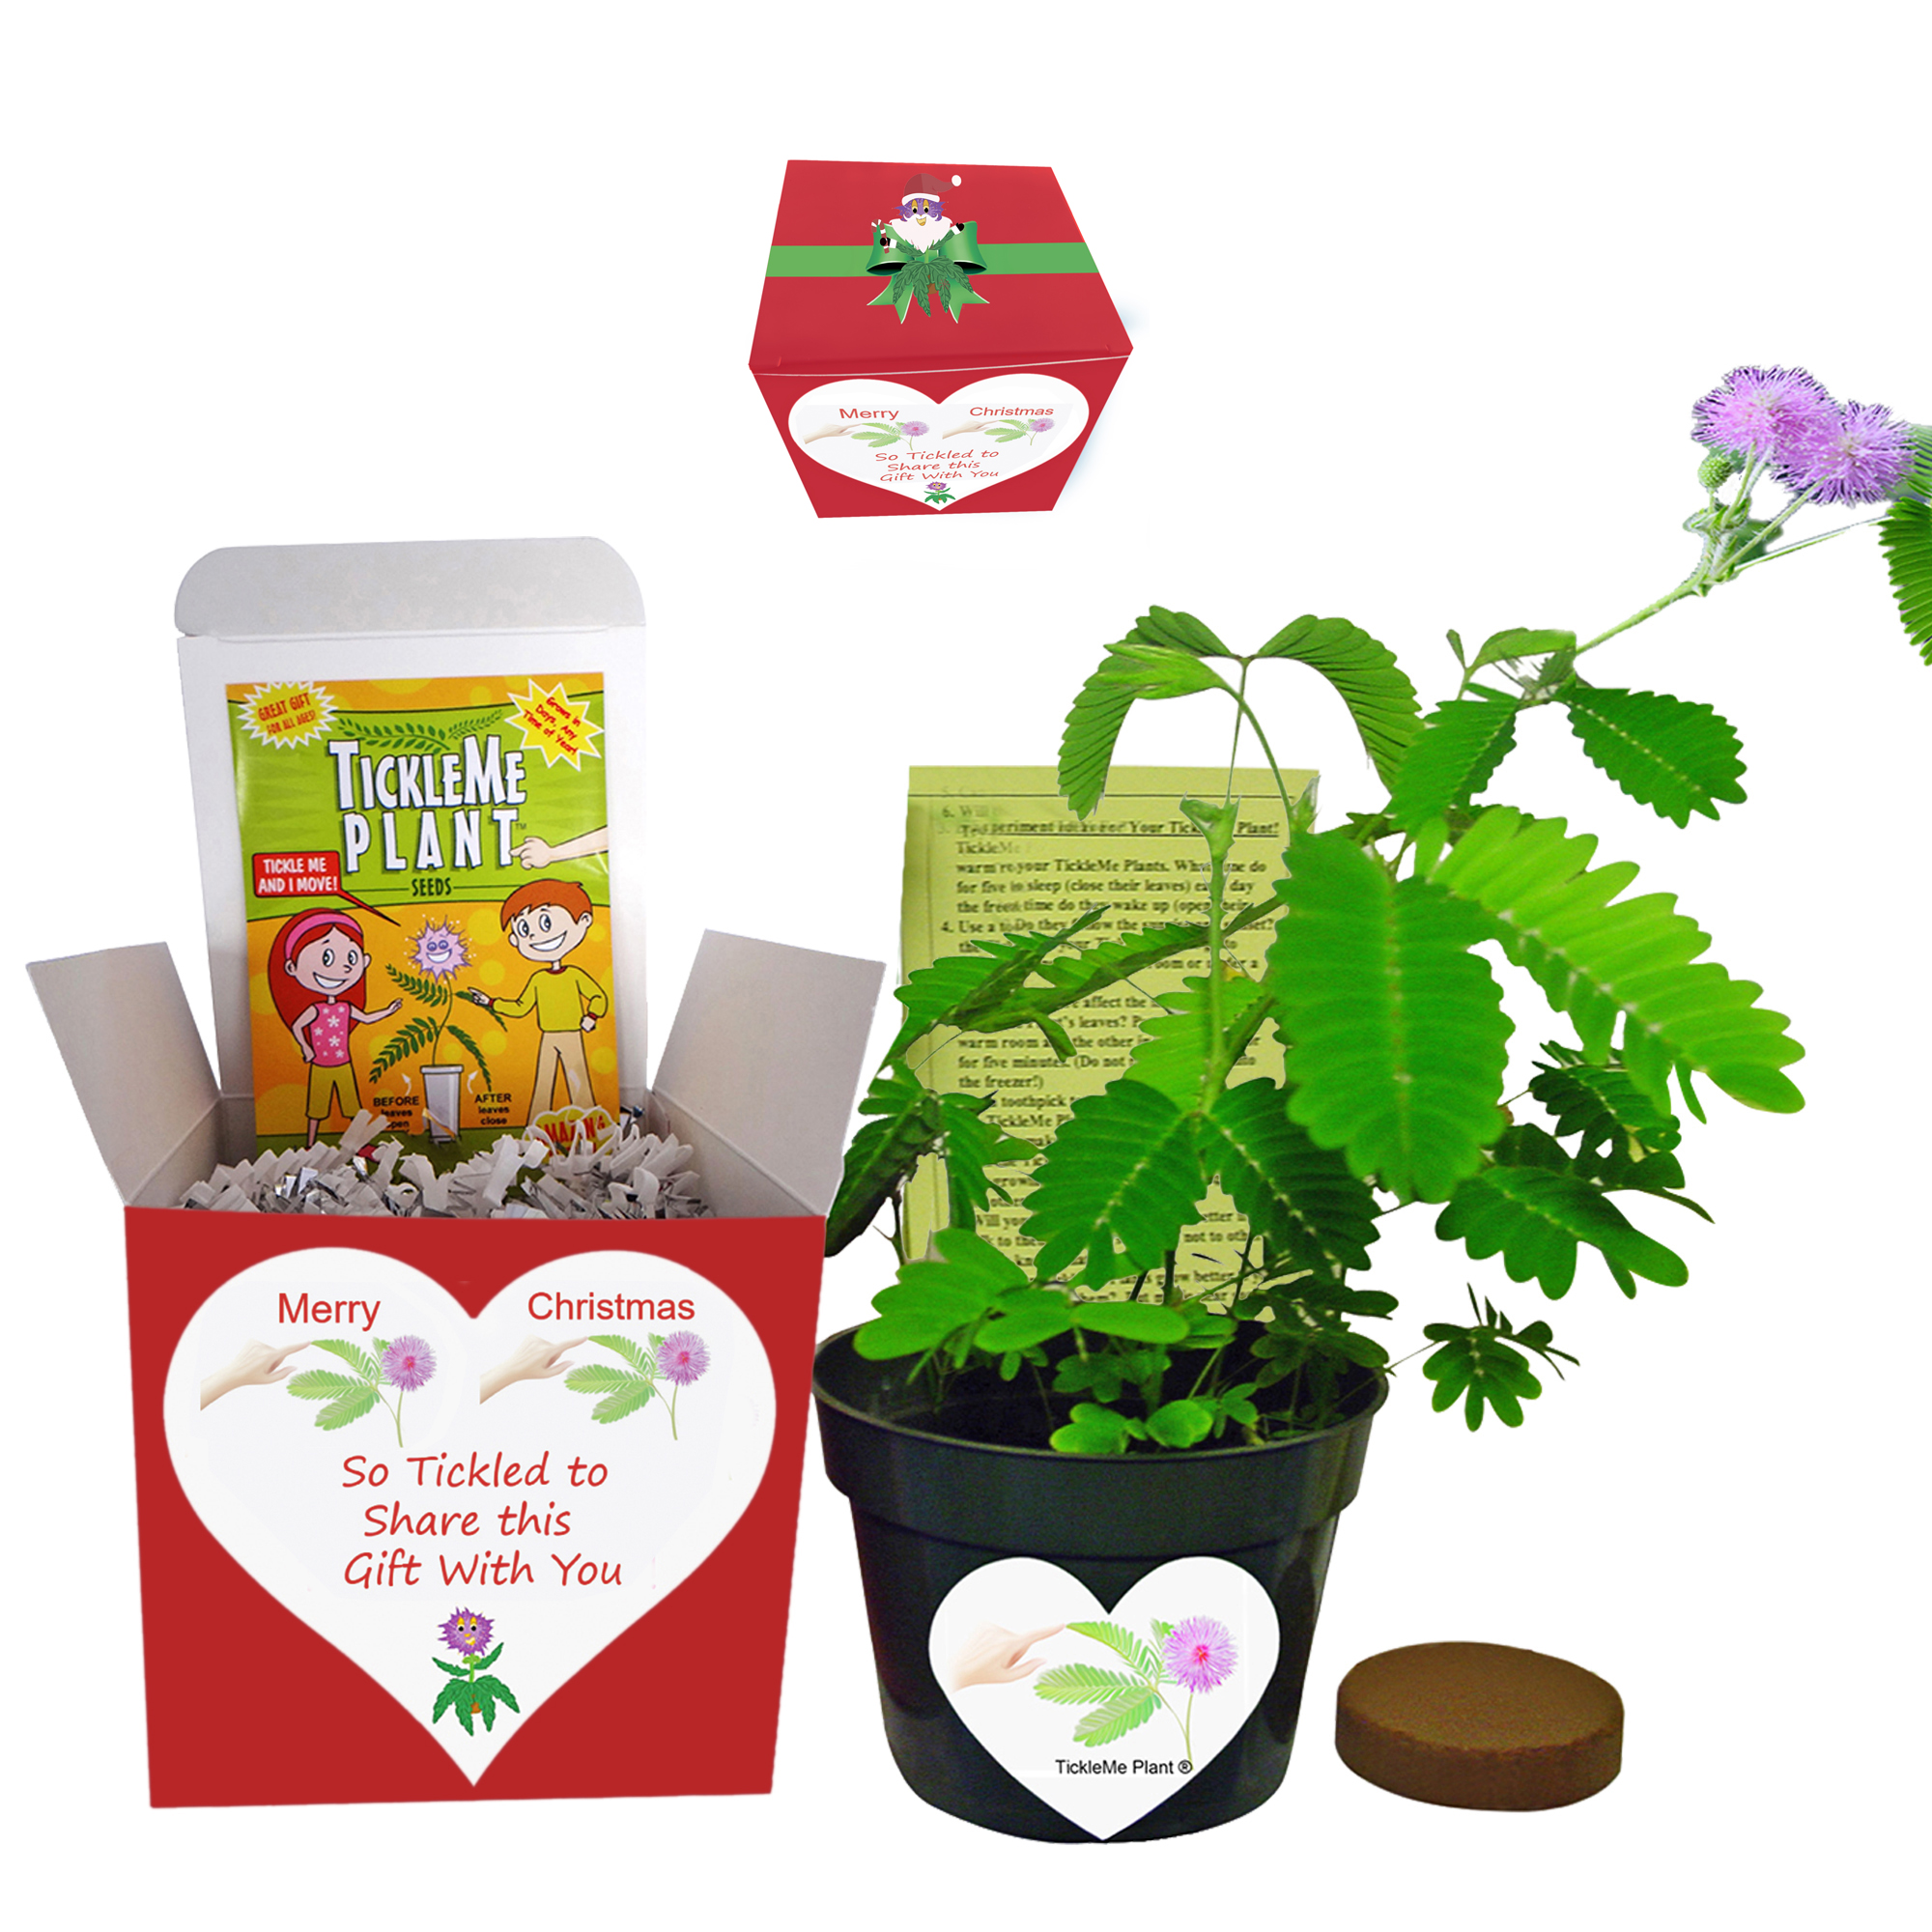 TickleMe Plant Box Set - Grow The Christmas House Plant That Closes Its Leaves When Tickled